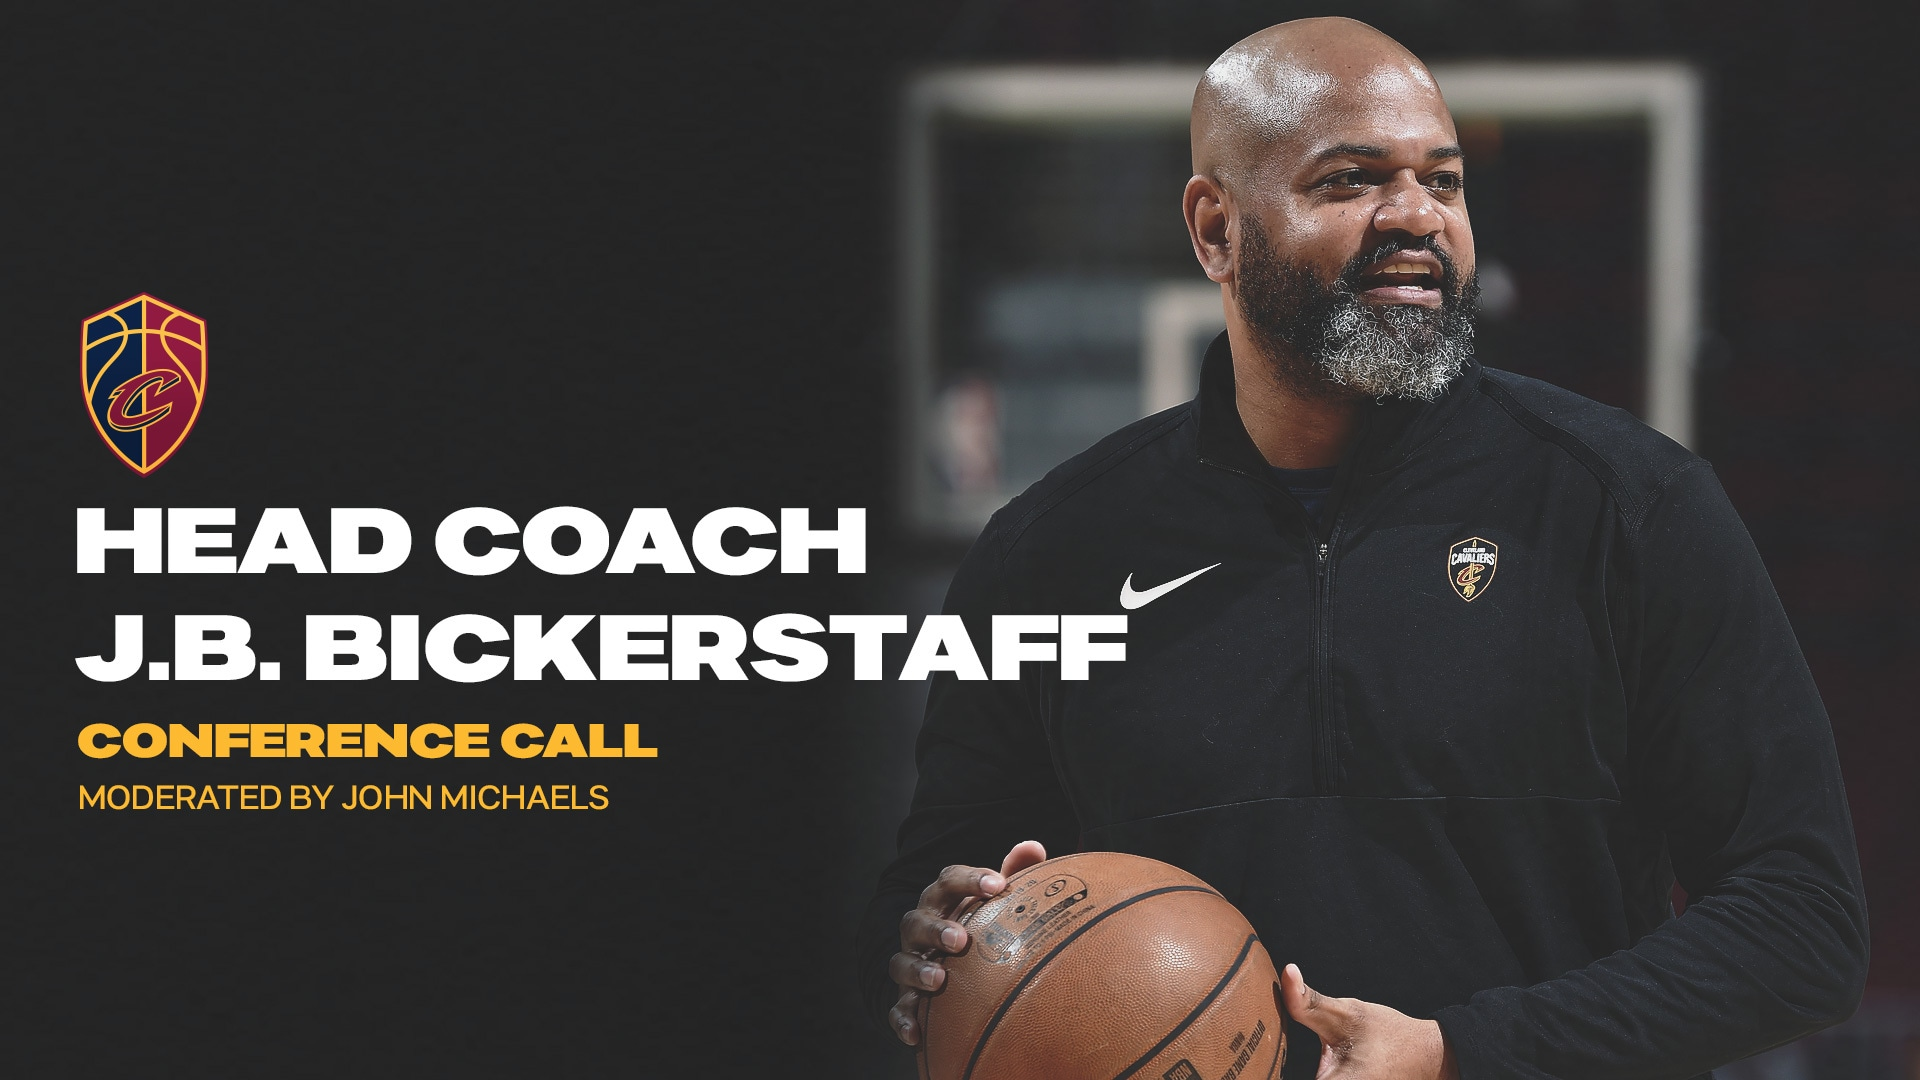 Conference Call with Head Coach J.B. Bickerstaff